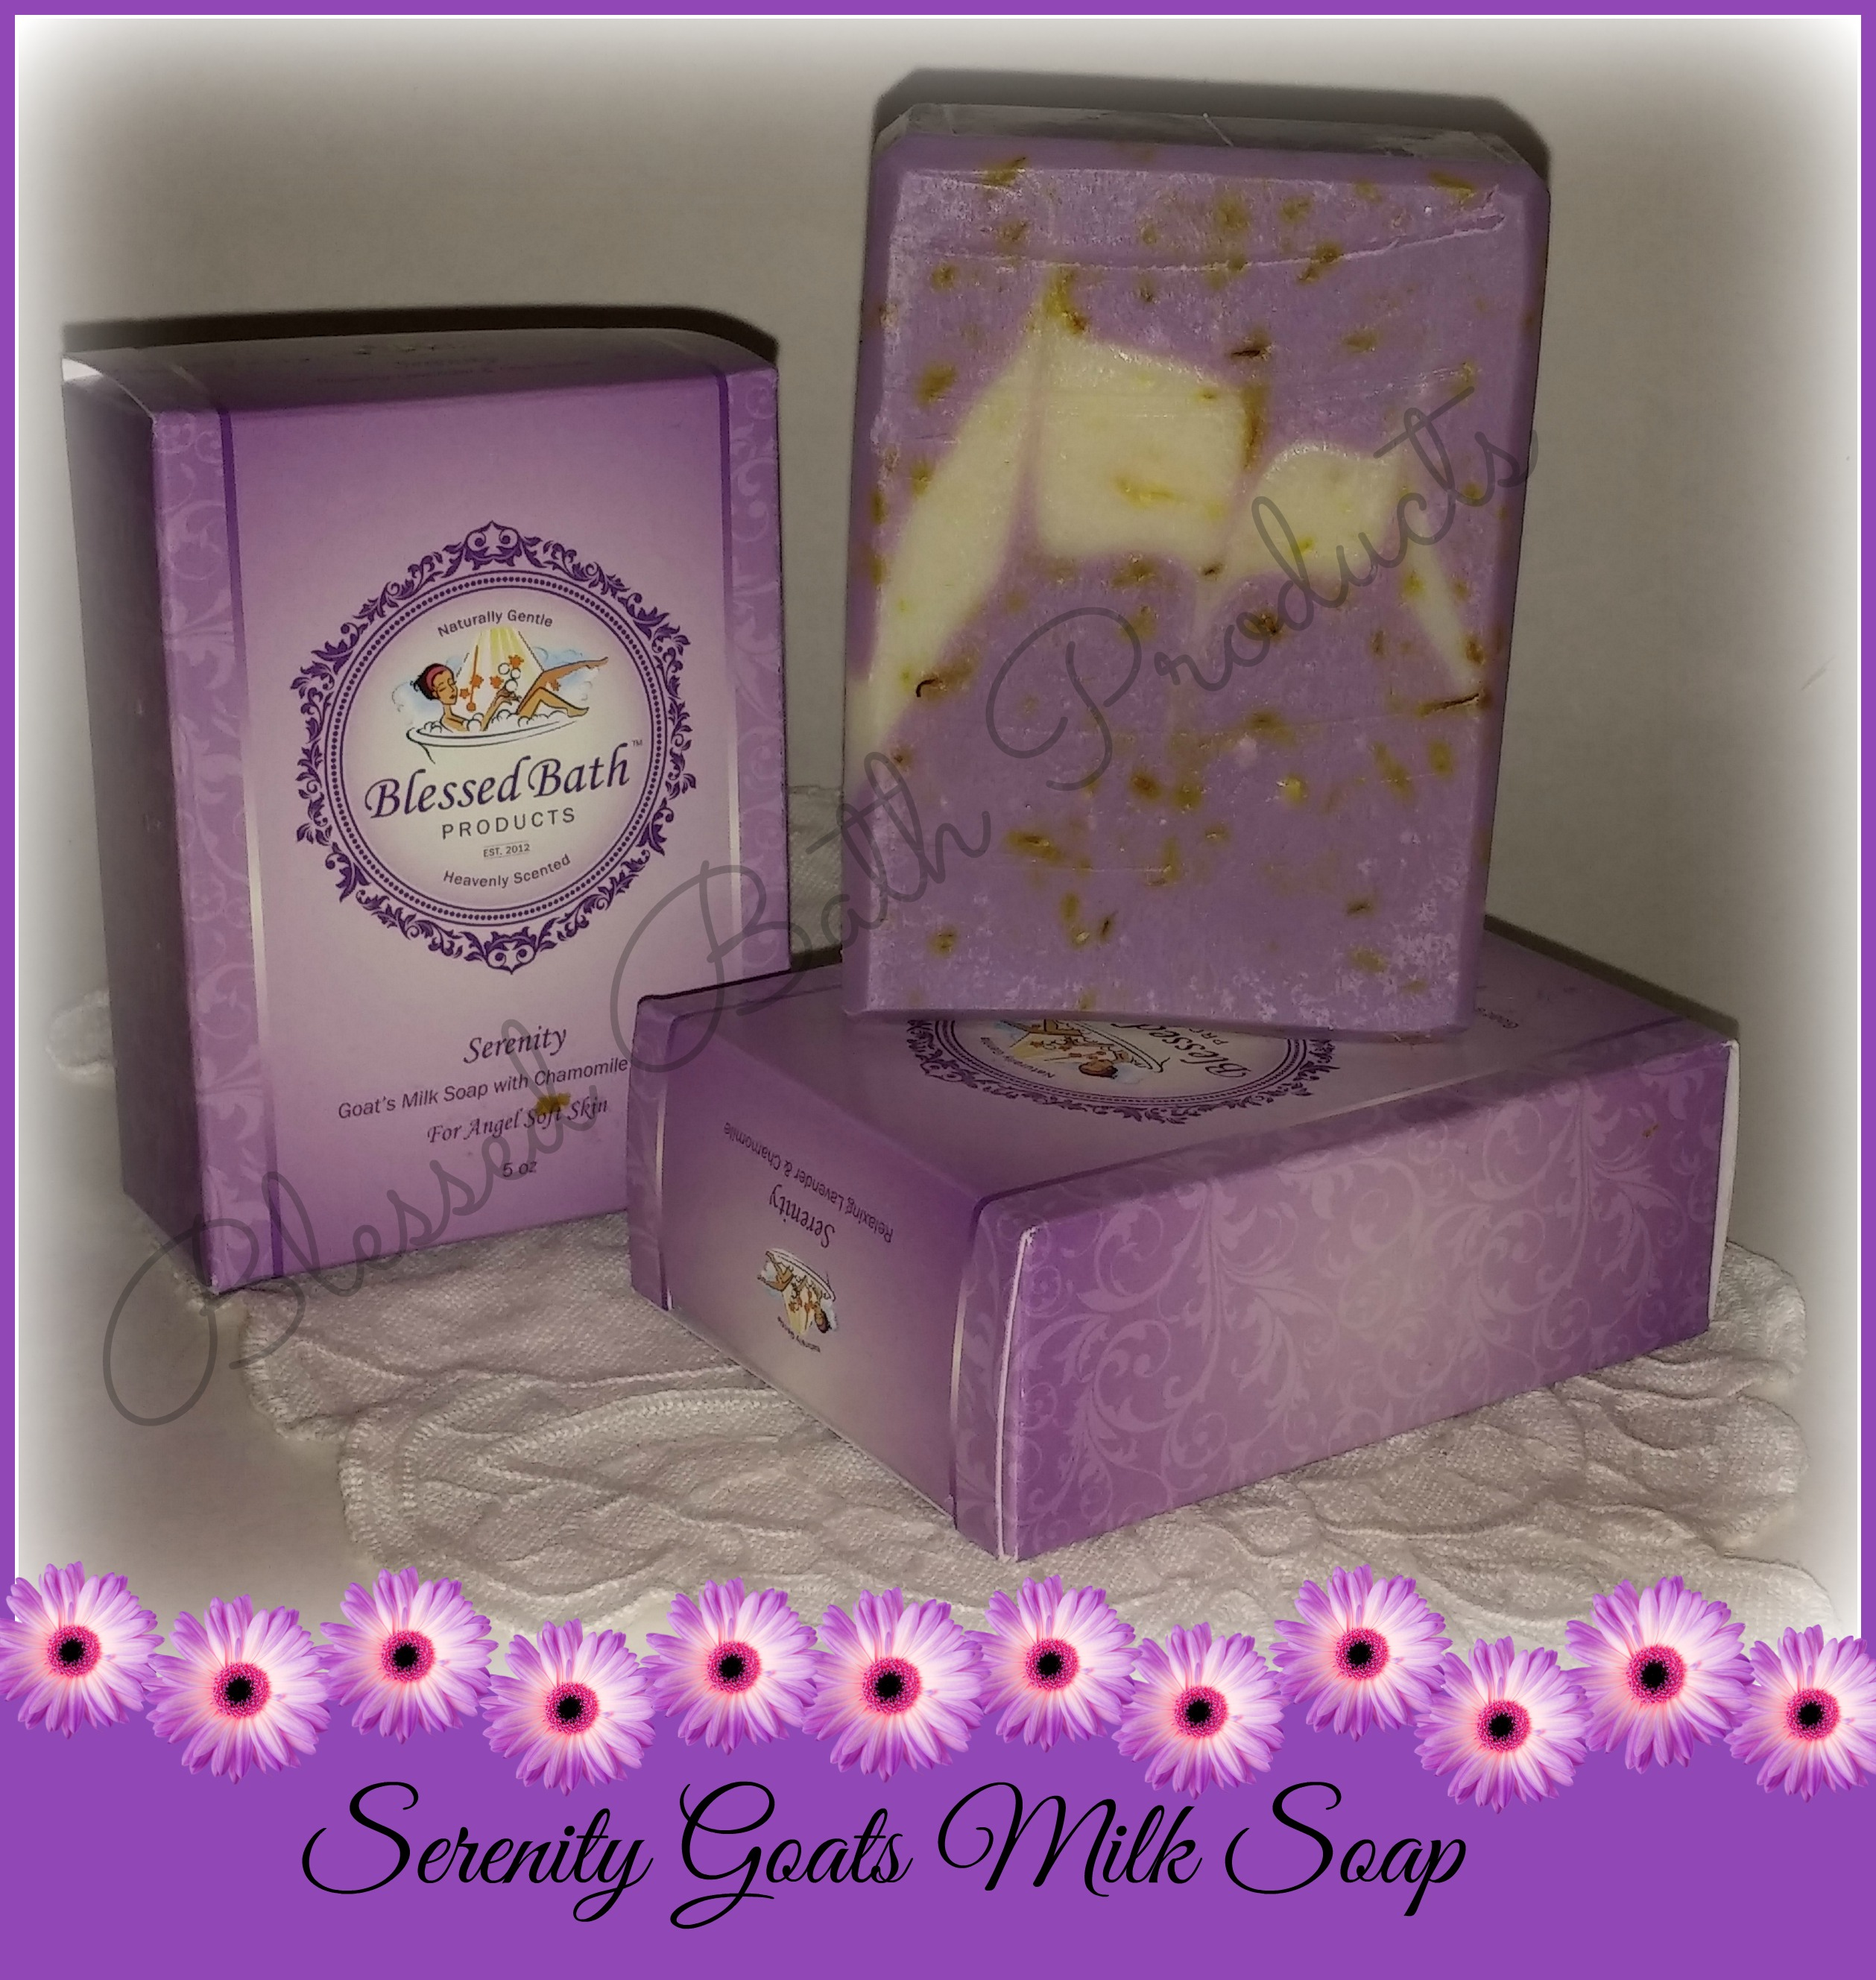 Serenity Goats Milk Soap